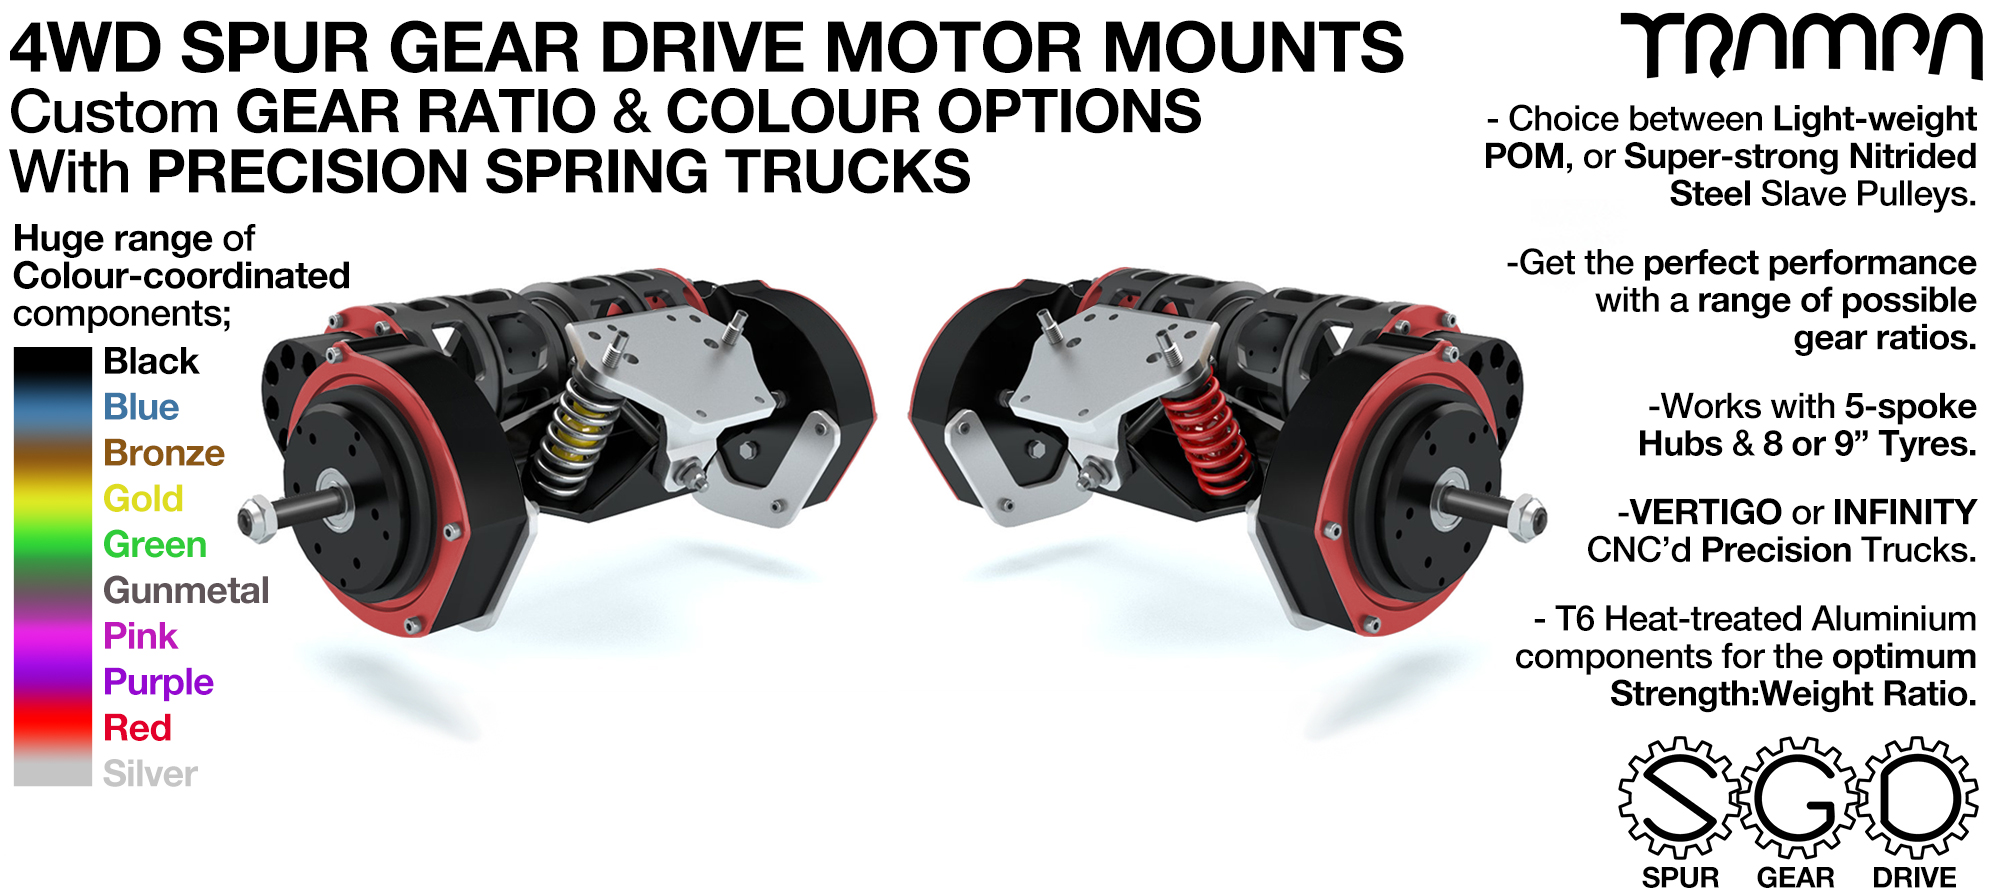 4WD TRAMPA Mountainboard Spur Gear Drive Motor Mount assembled onto 2x Precision Made 16.5Inch Mountainboard TRUCKs